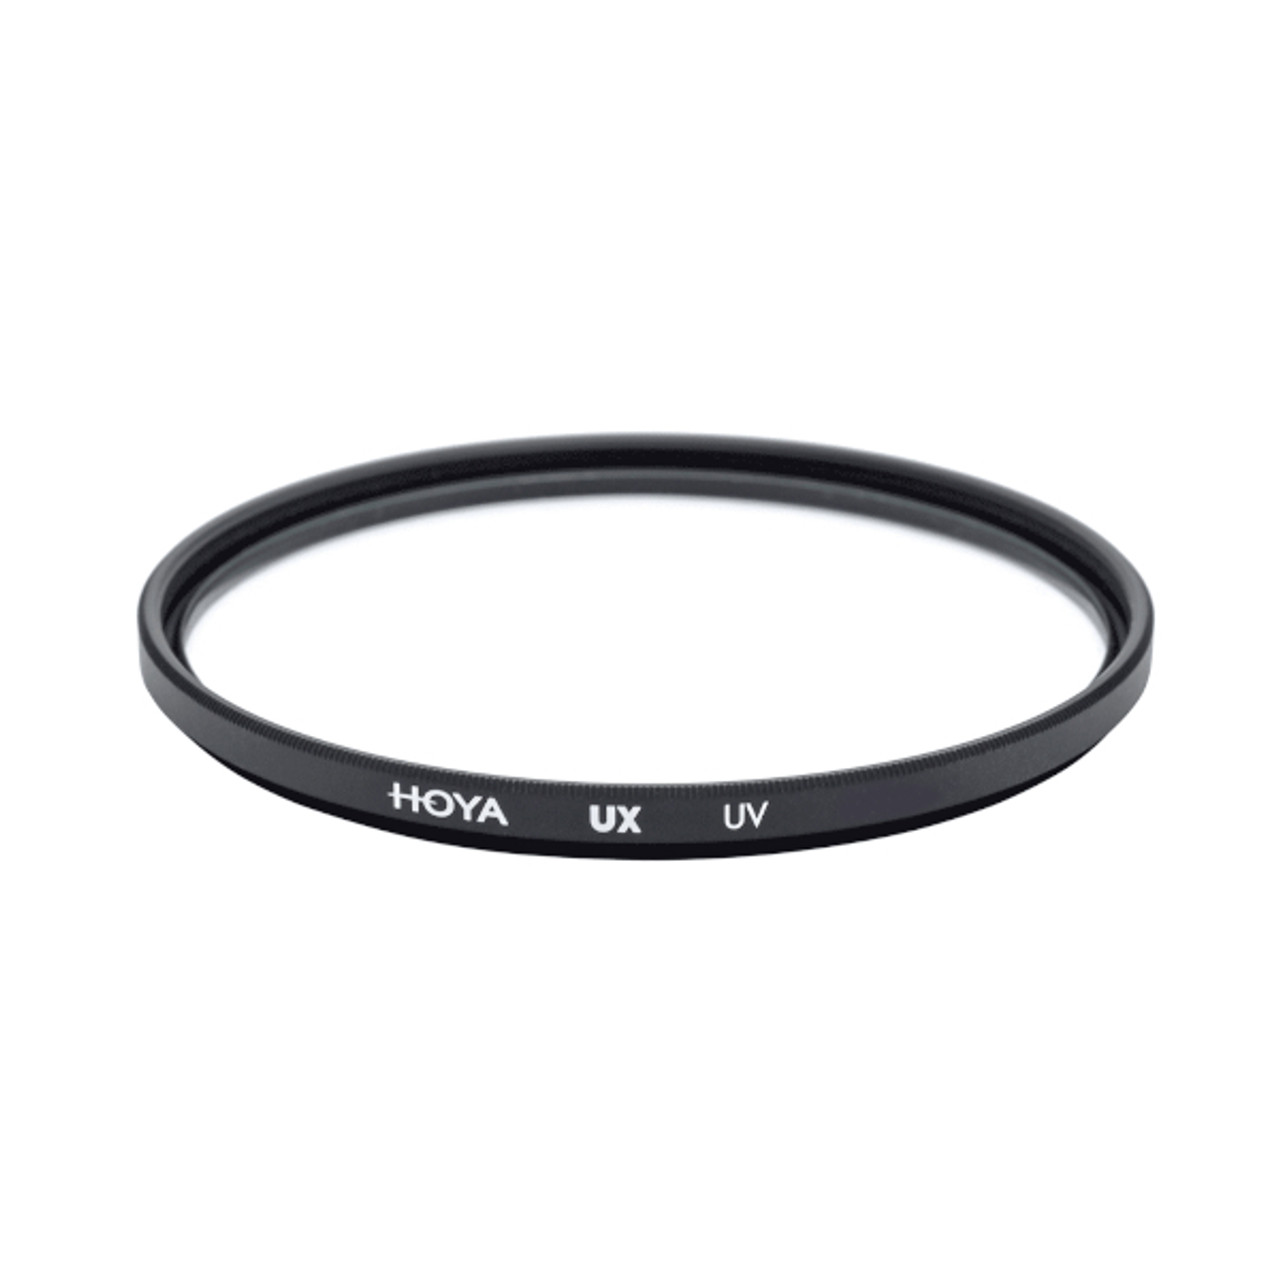 Hoya 58mm UX UV Filter